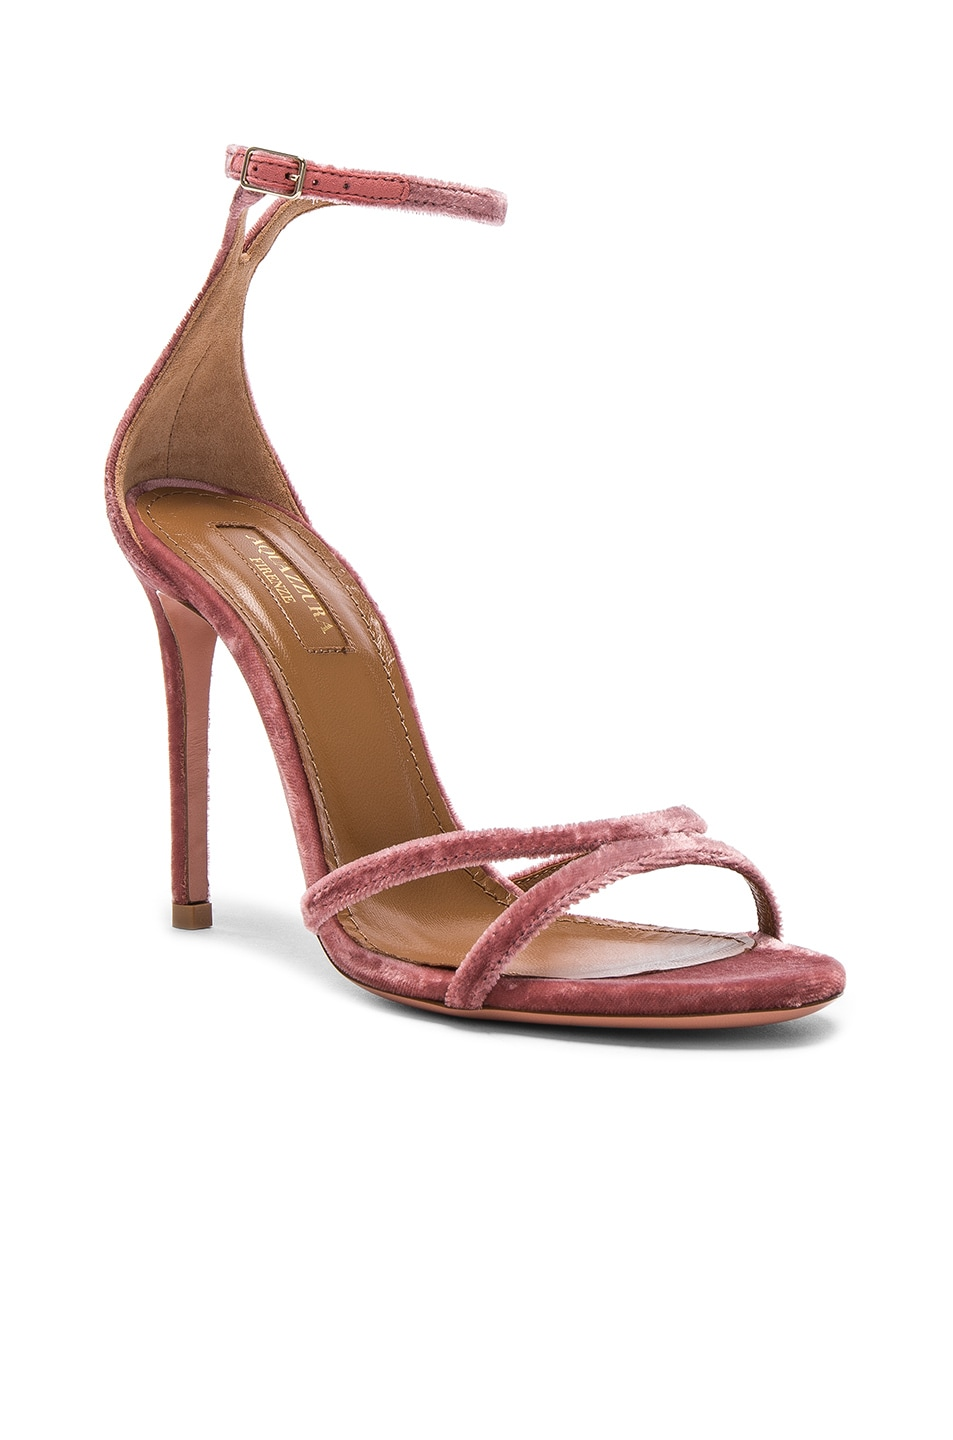 Image 2 of Aquazzura Velvet Purist Sandal Heels in Antique Rose